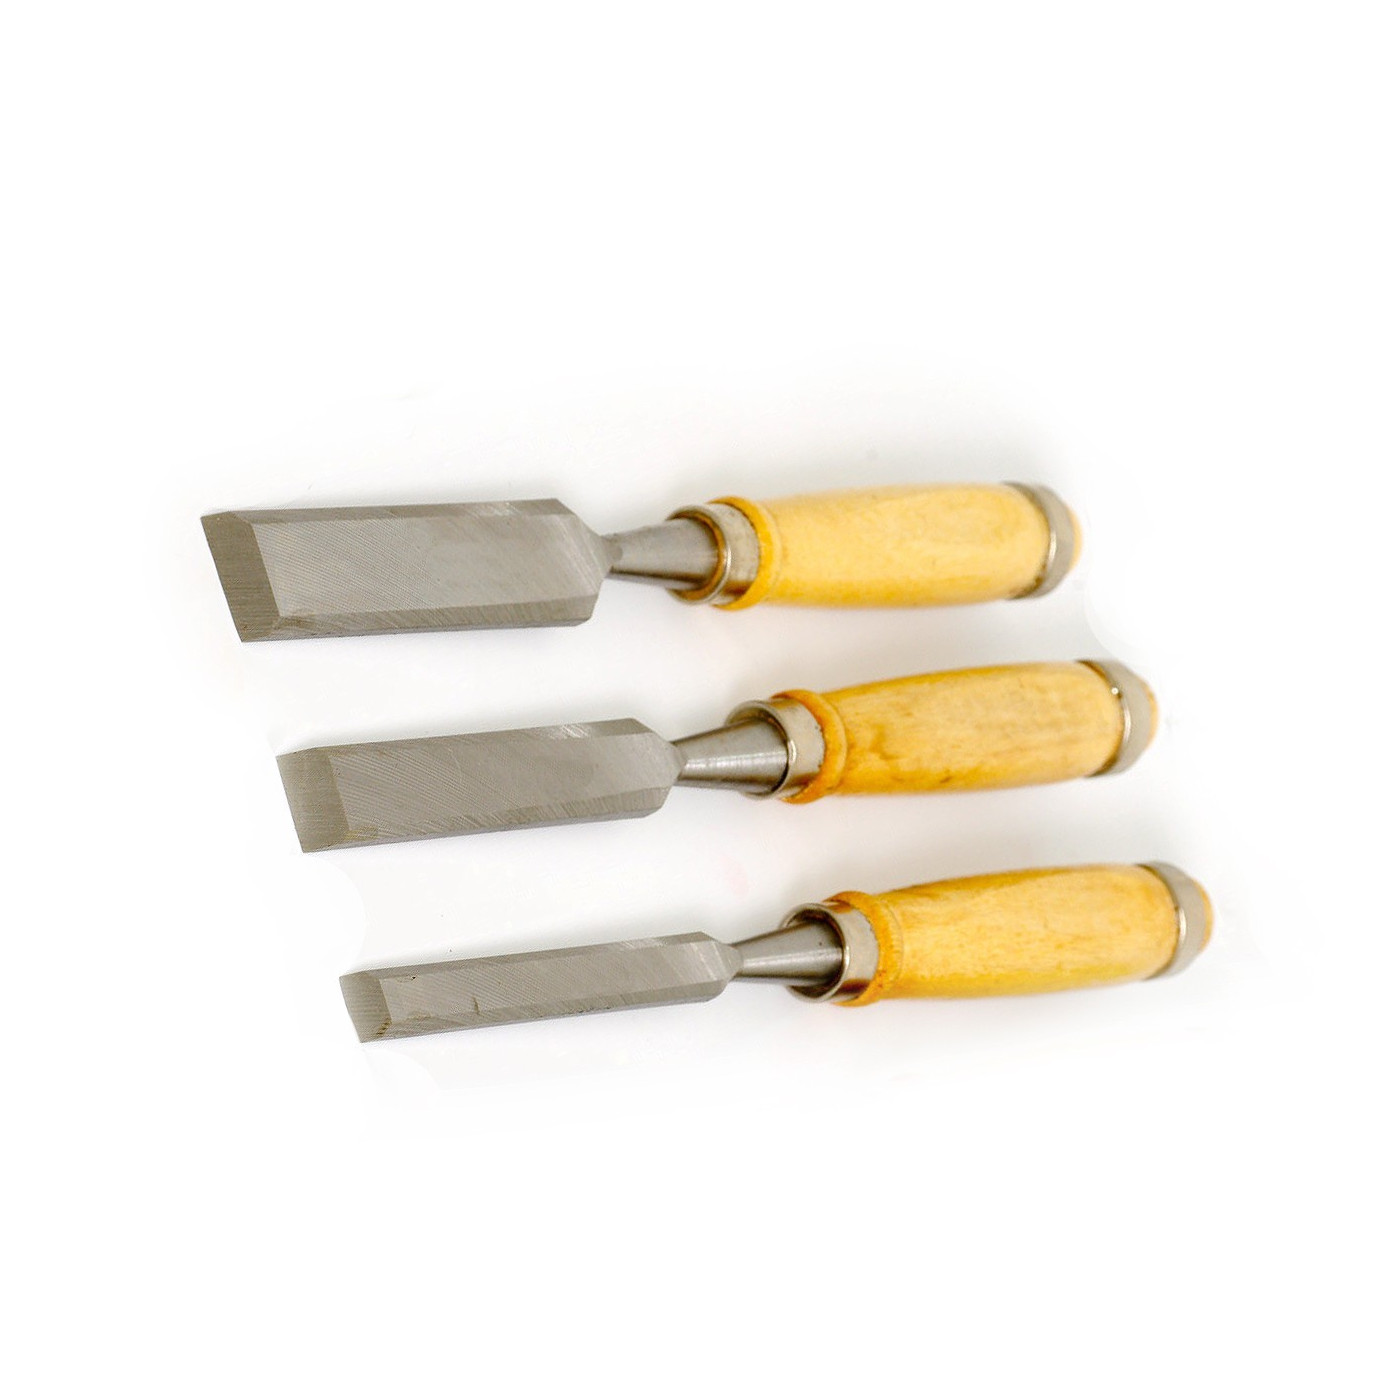 Set chisels for wood: 12mm, 18mm, 24mm